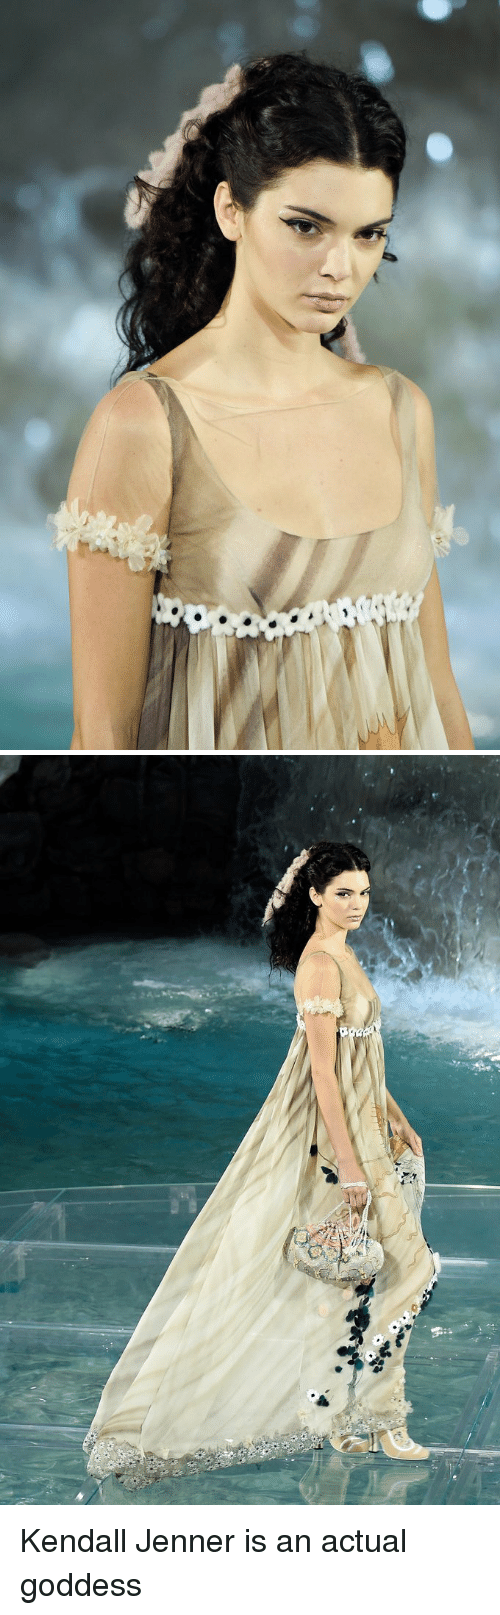 Funny: V: Kendall Jenner is an actual goddess